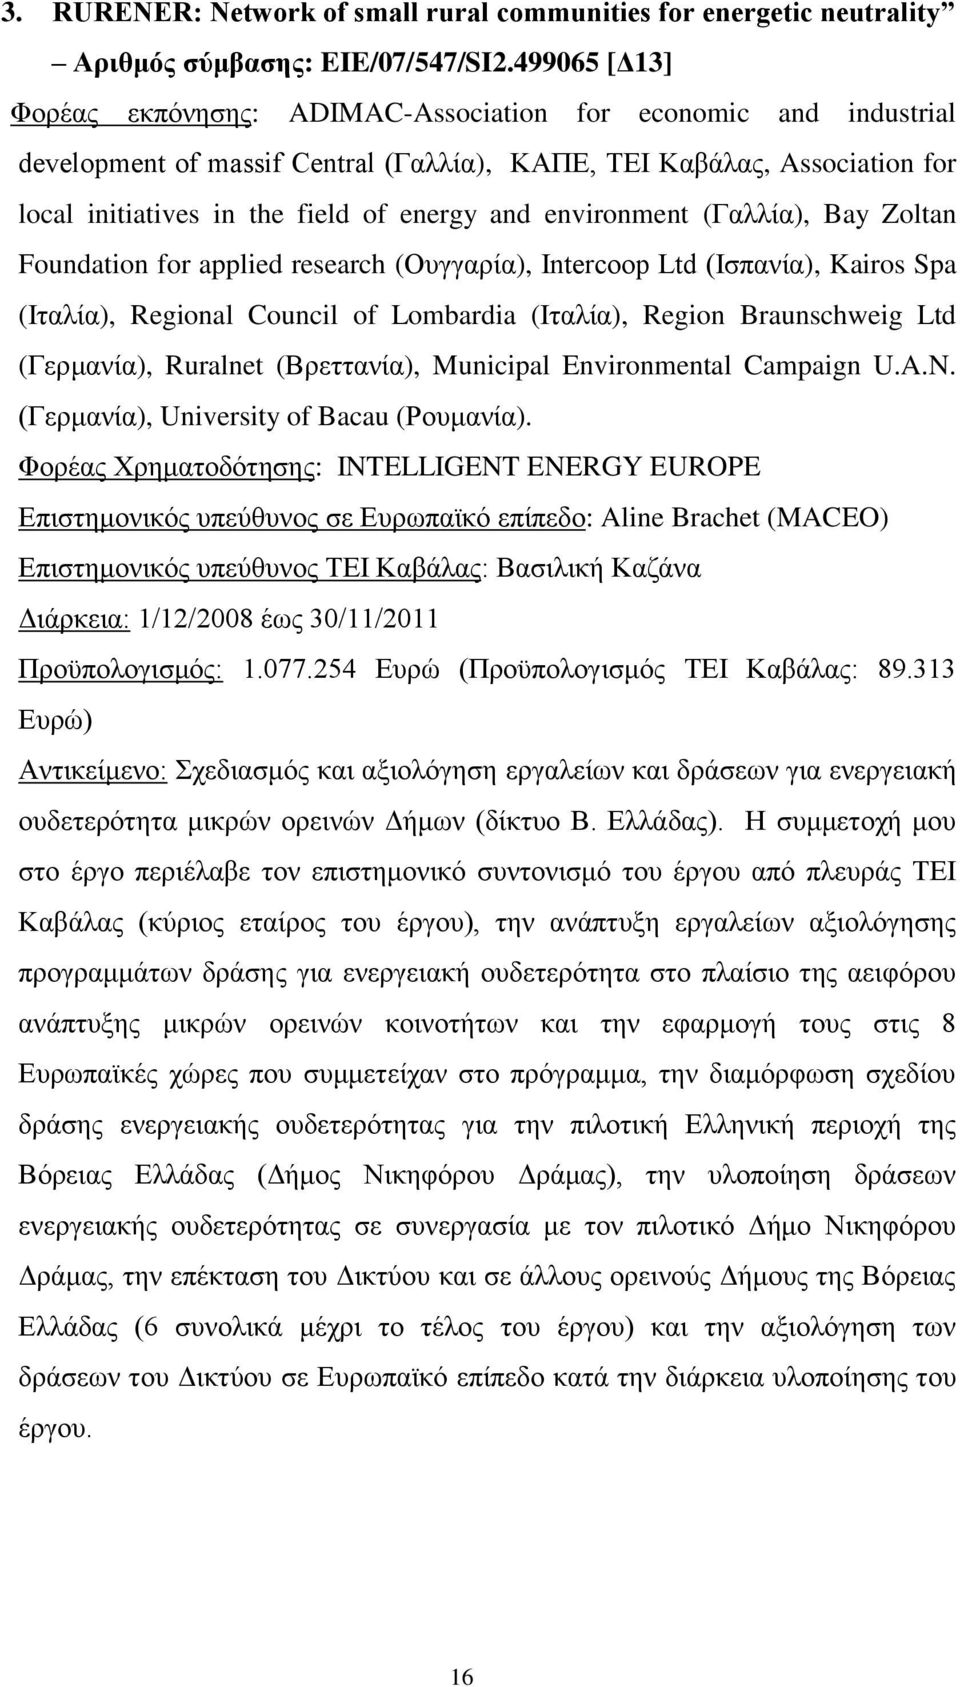 environment (Γαλλία), Bay Zoltan Foundation for applied research (Ουγγαρία), Intercoop Ltd (Ισπανία), Kairos Spa (Ιταλία), Regional Council of Lombardia (Ιταλία), Region Braunschweig Ltd (Γερμανία),